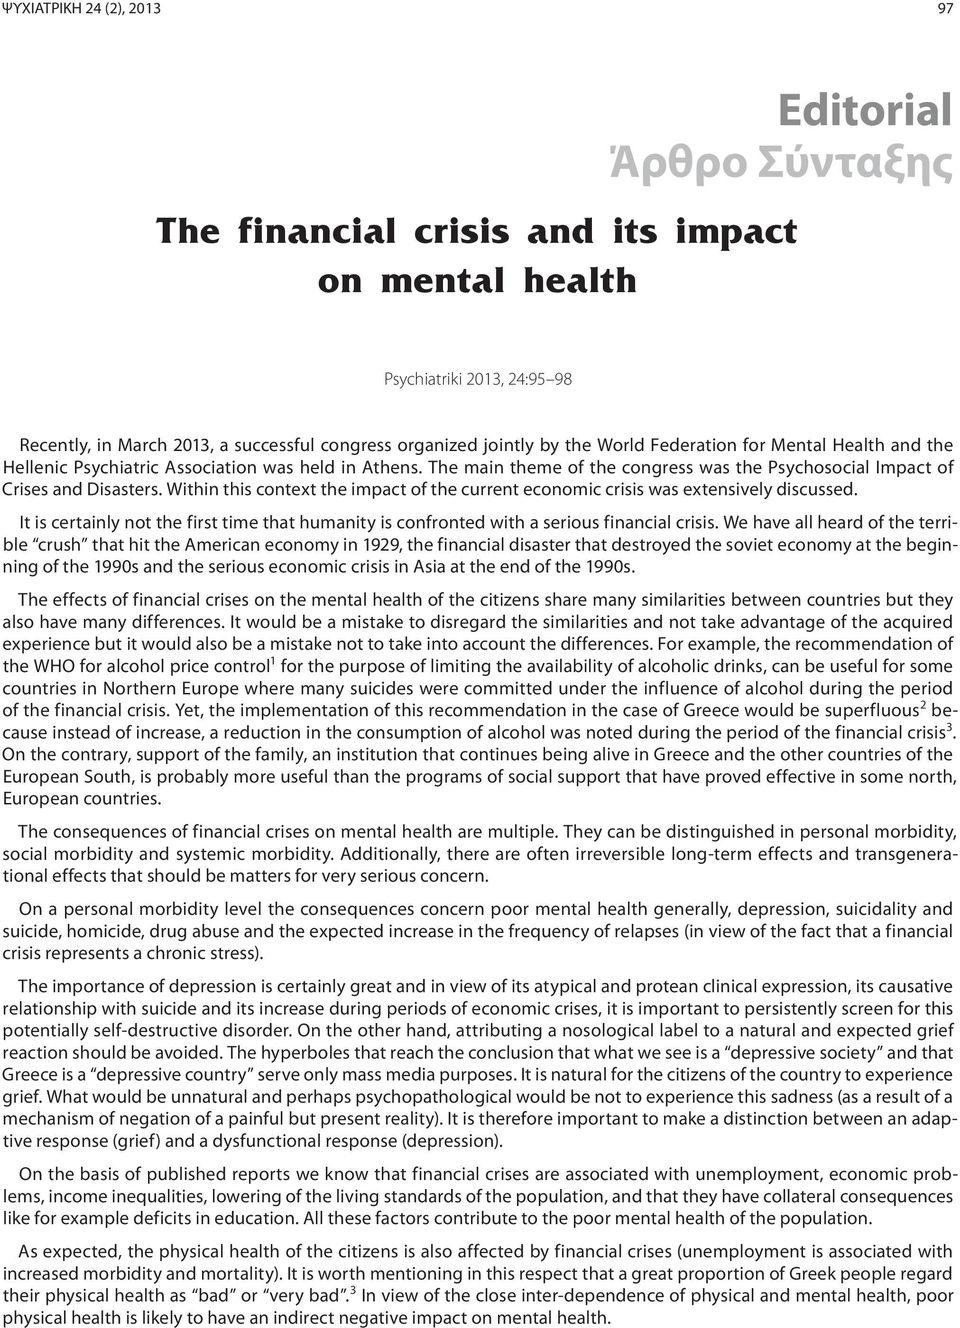 Within this context the impact of the current economic crisis was extensively discussed. It is certainly not the first time that humanity is confronted with a serious financial crisis.